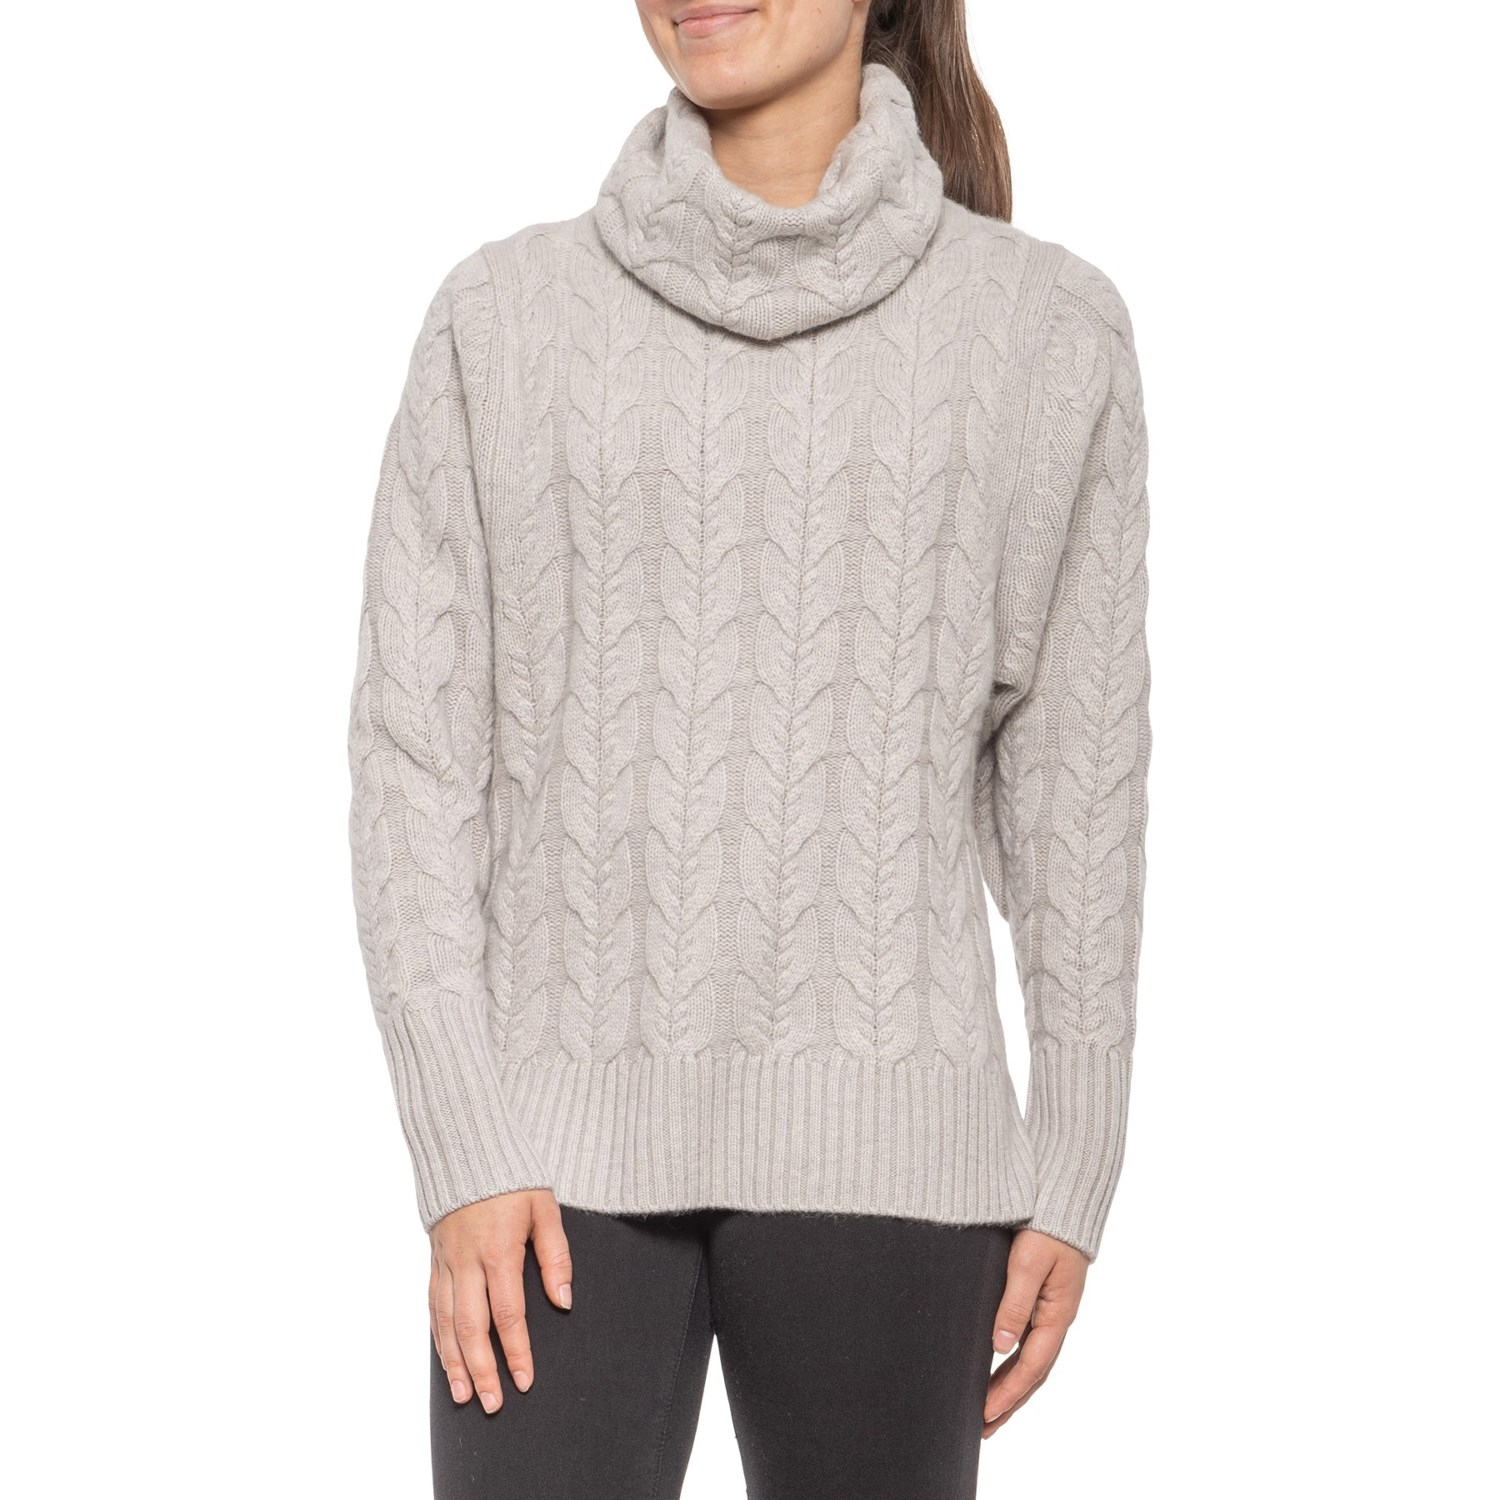 Tahari Big Cable Cowl Neck Sweater (For Women)